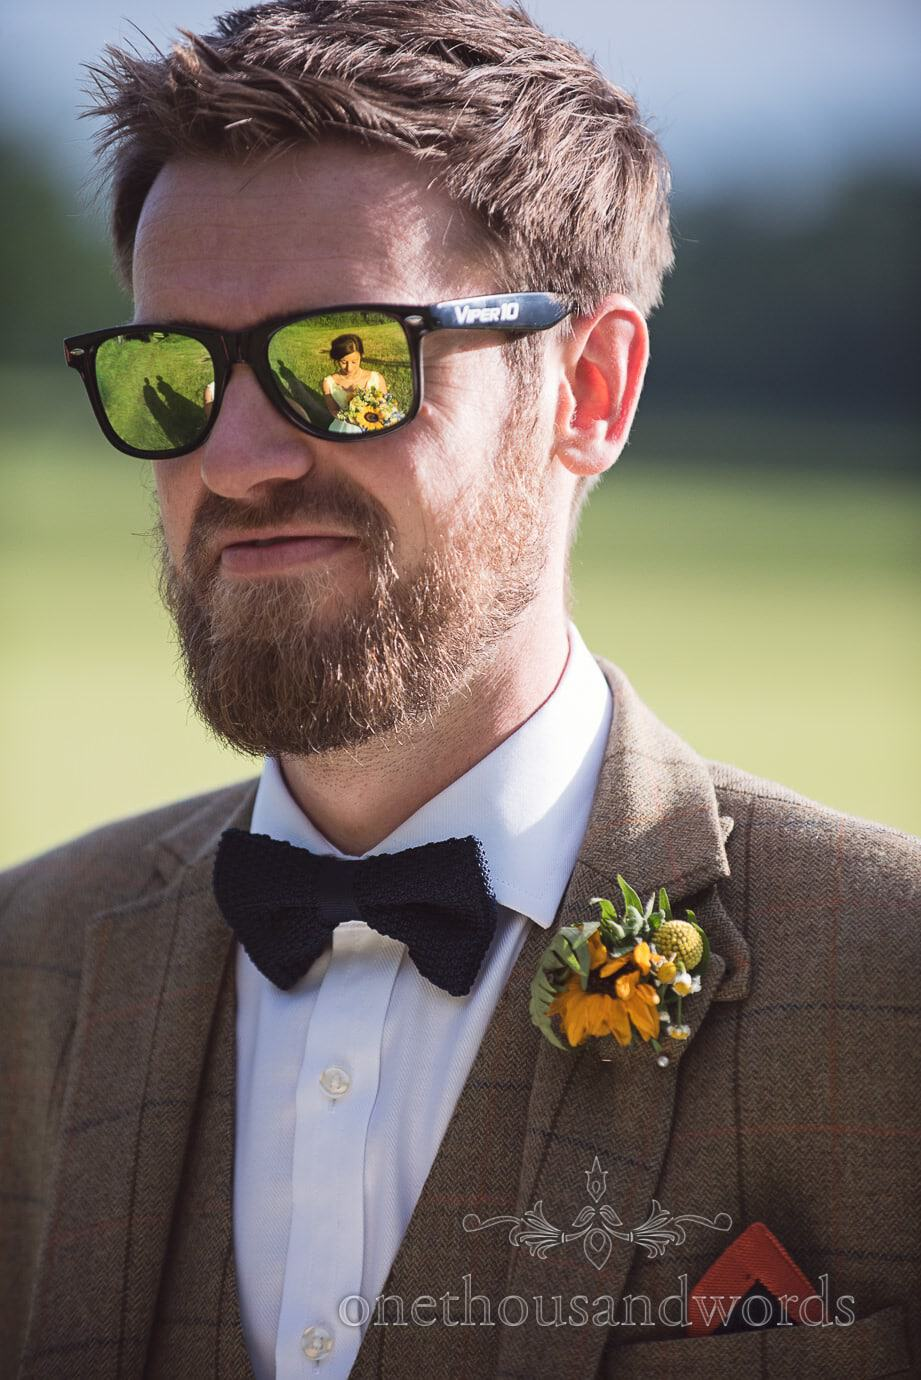 Bride's reflection in groom's yellow sunglasses at rustic wedding in the countryside